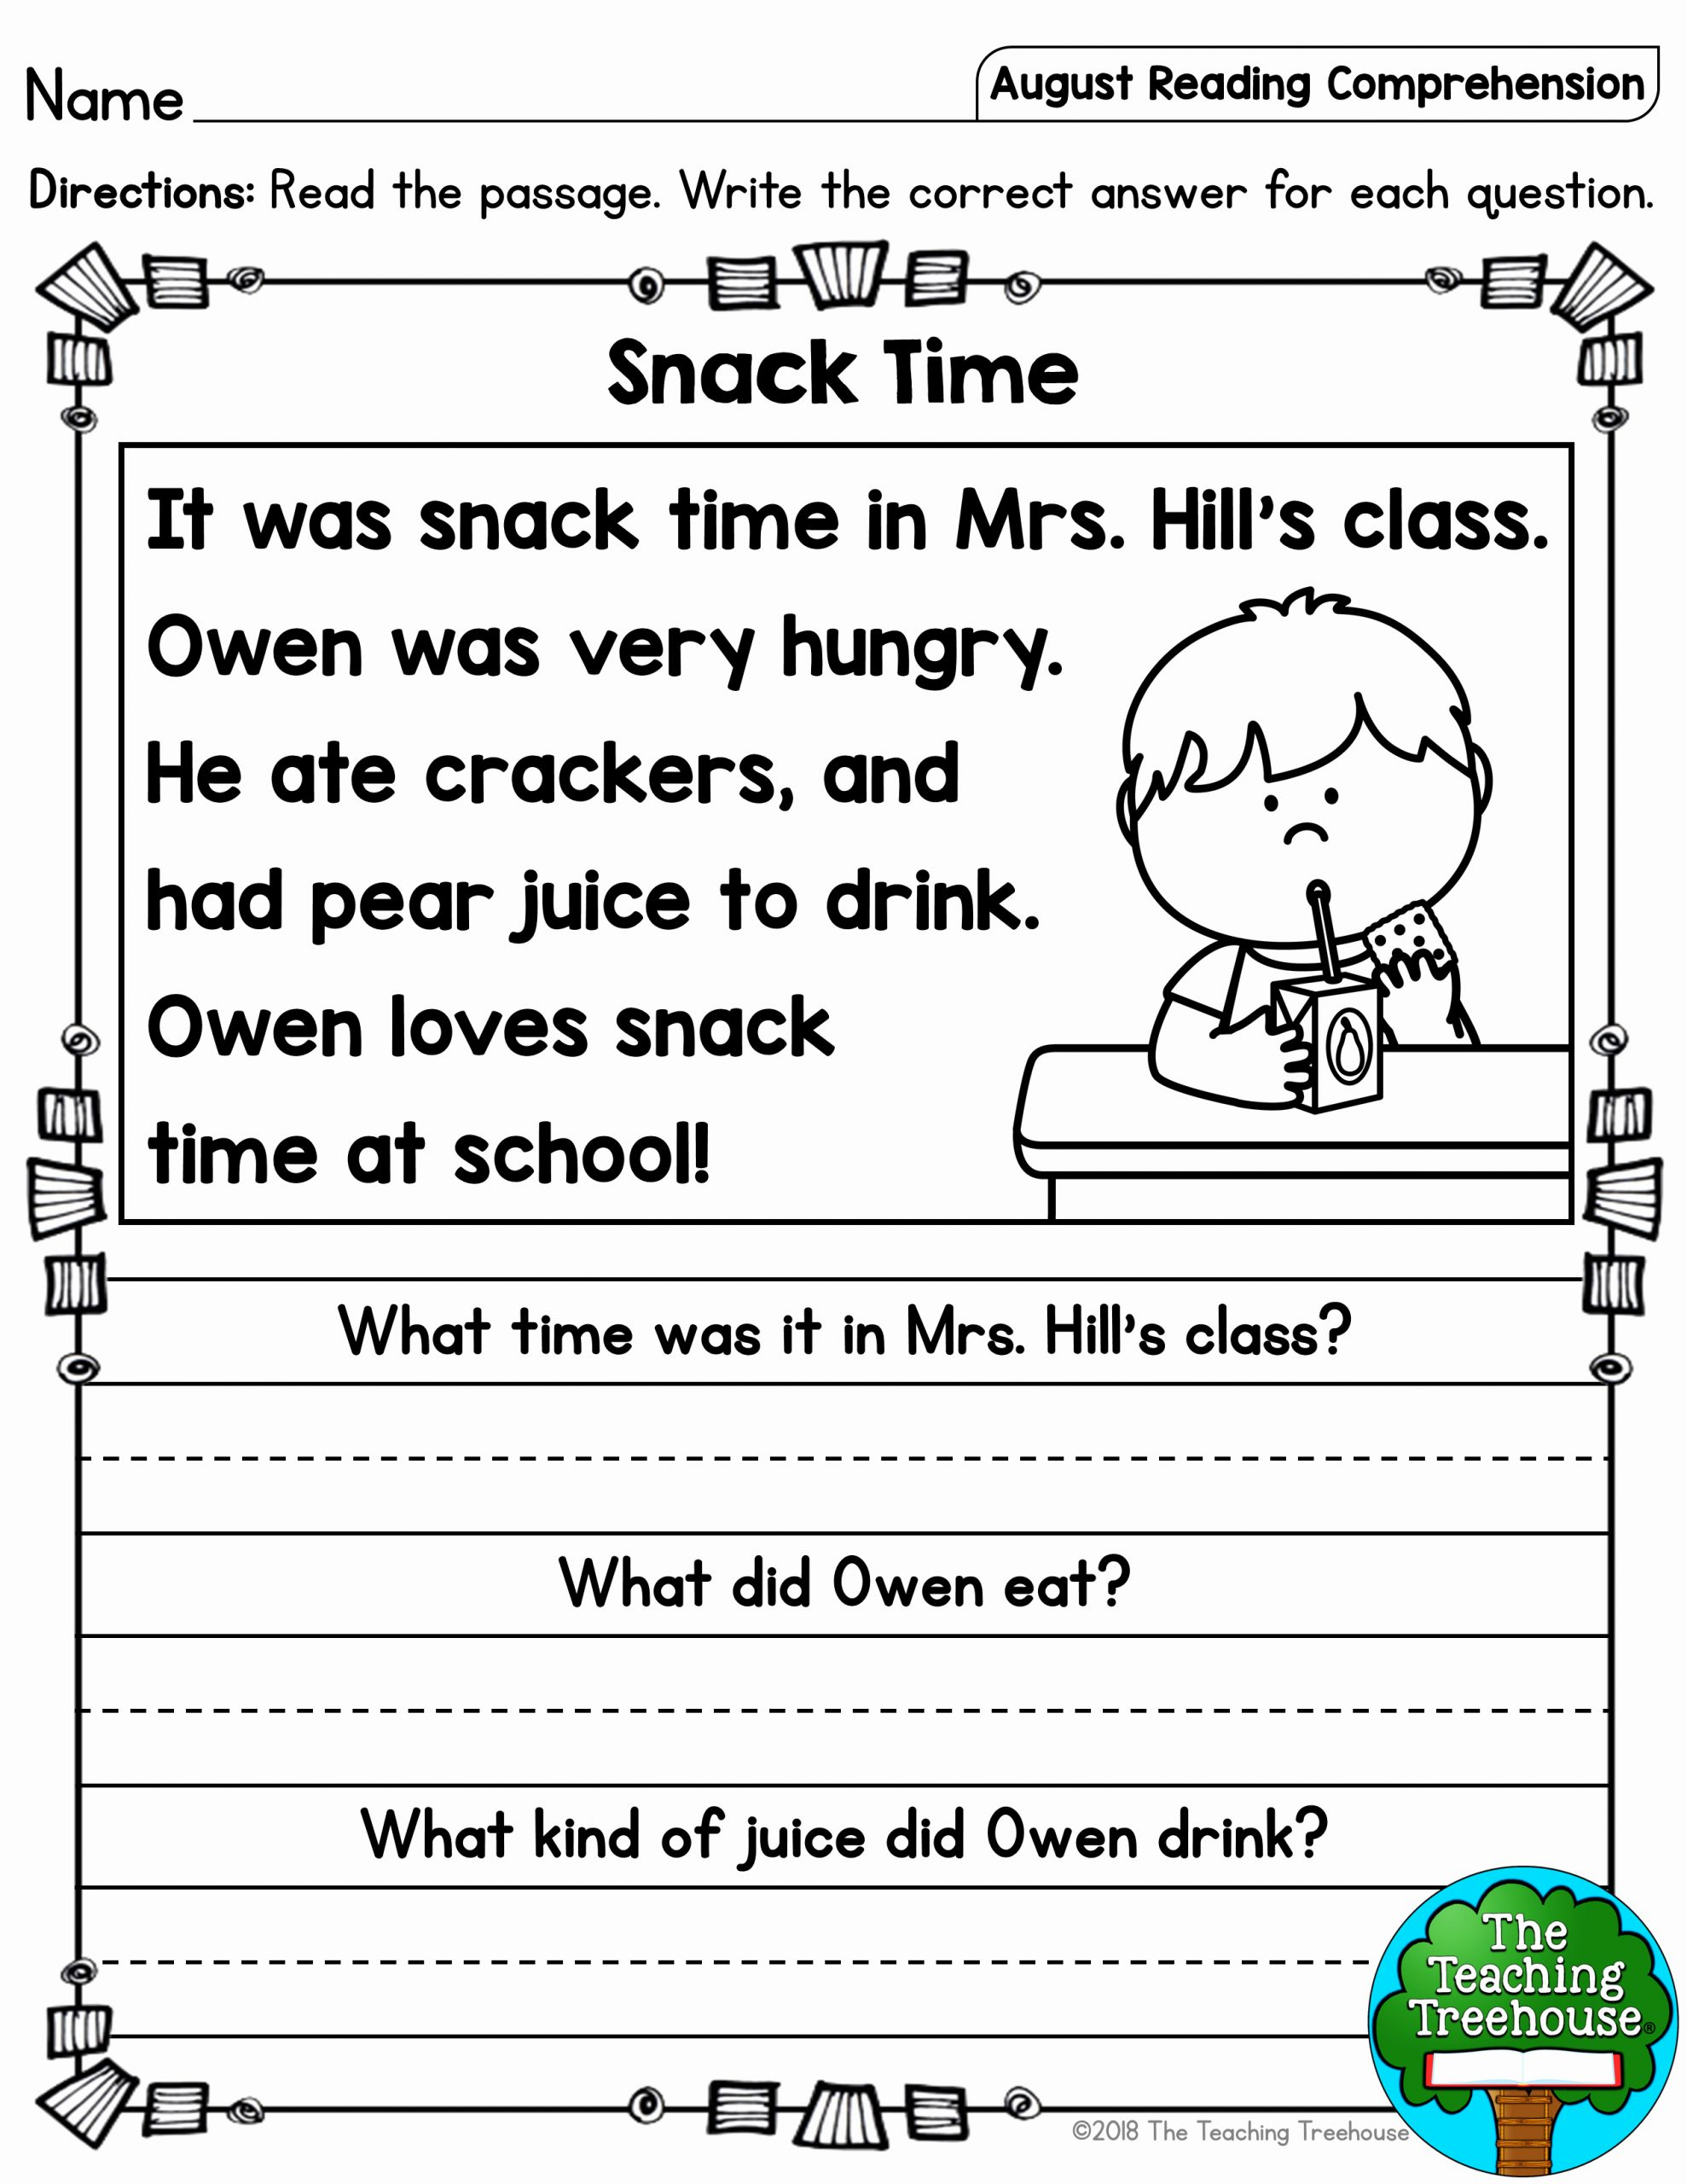 Preschool Reading Comprehension Worksheets Elegant This Free Reading Prehension Activity is Ideal for